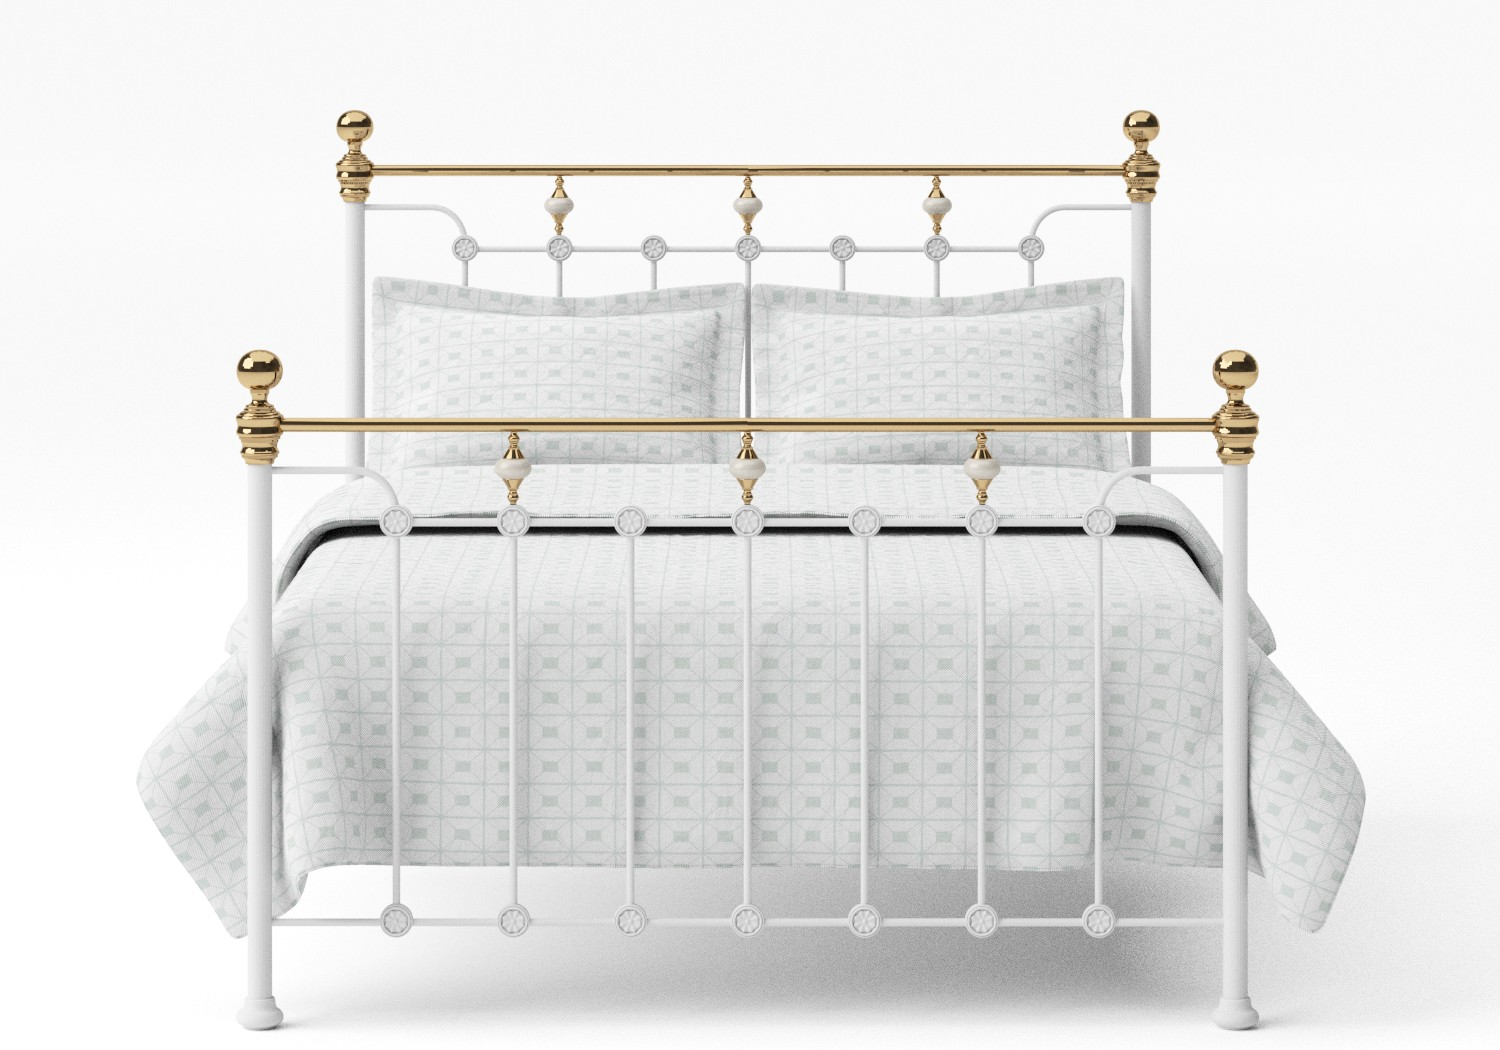 Glenholm Iron/Metal Bed in Satin White with Brass details